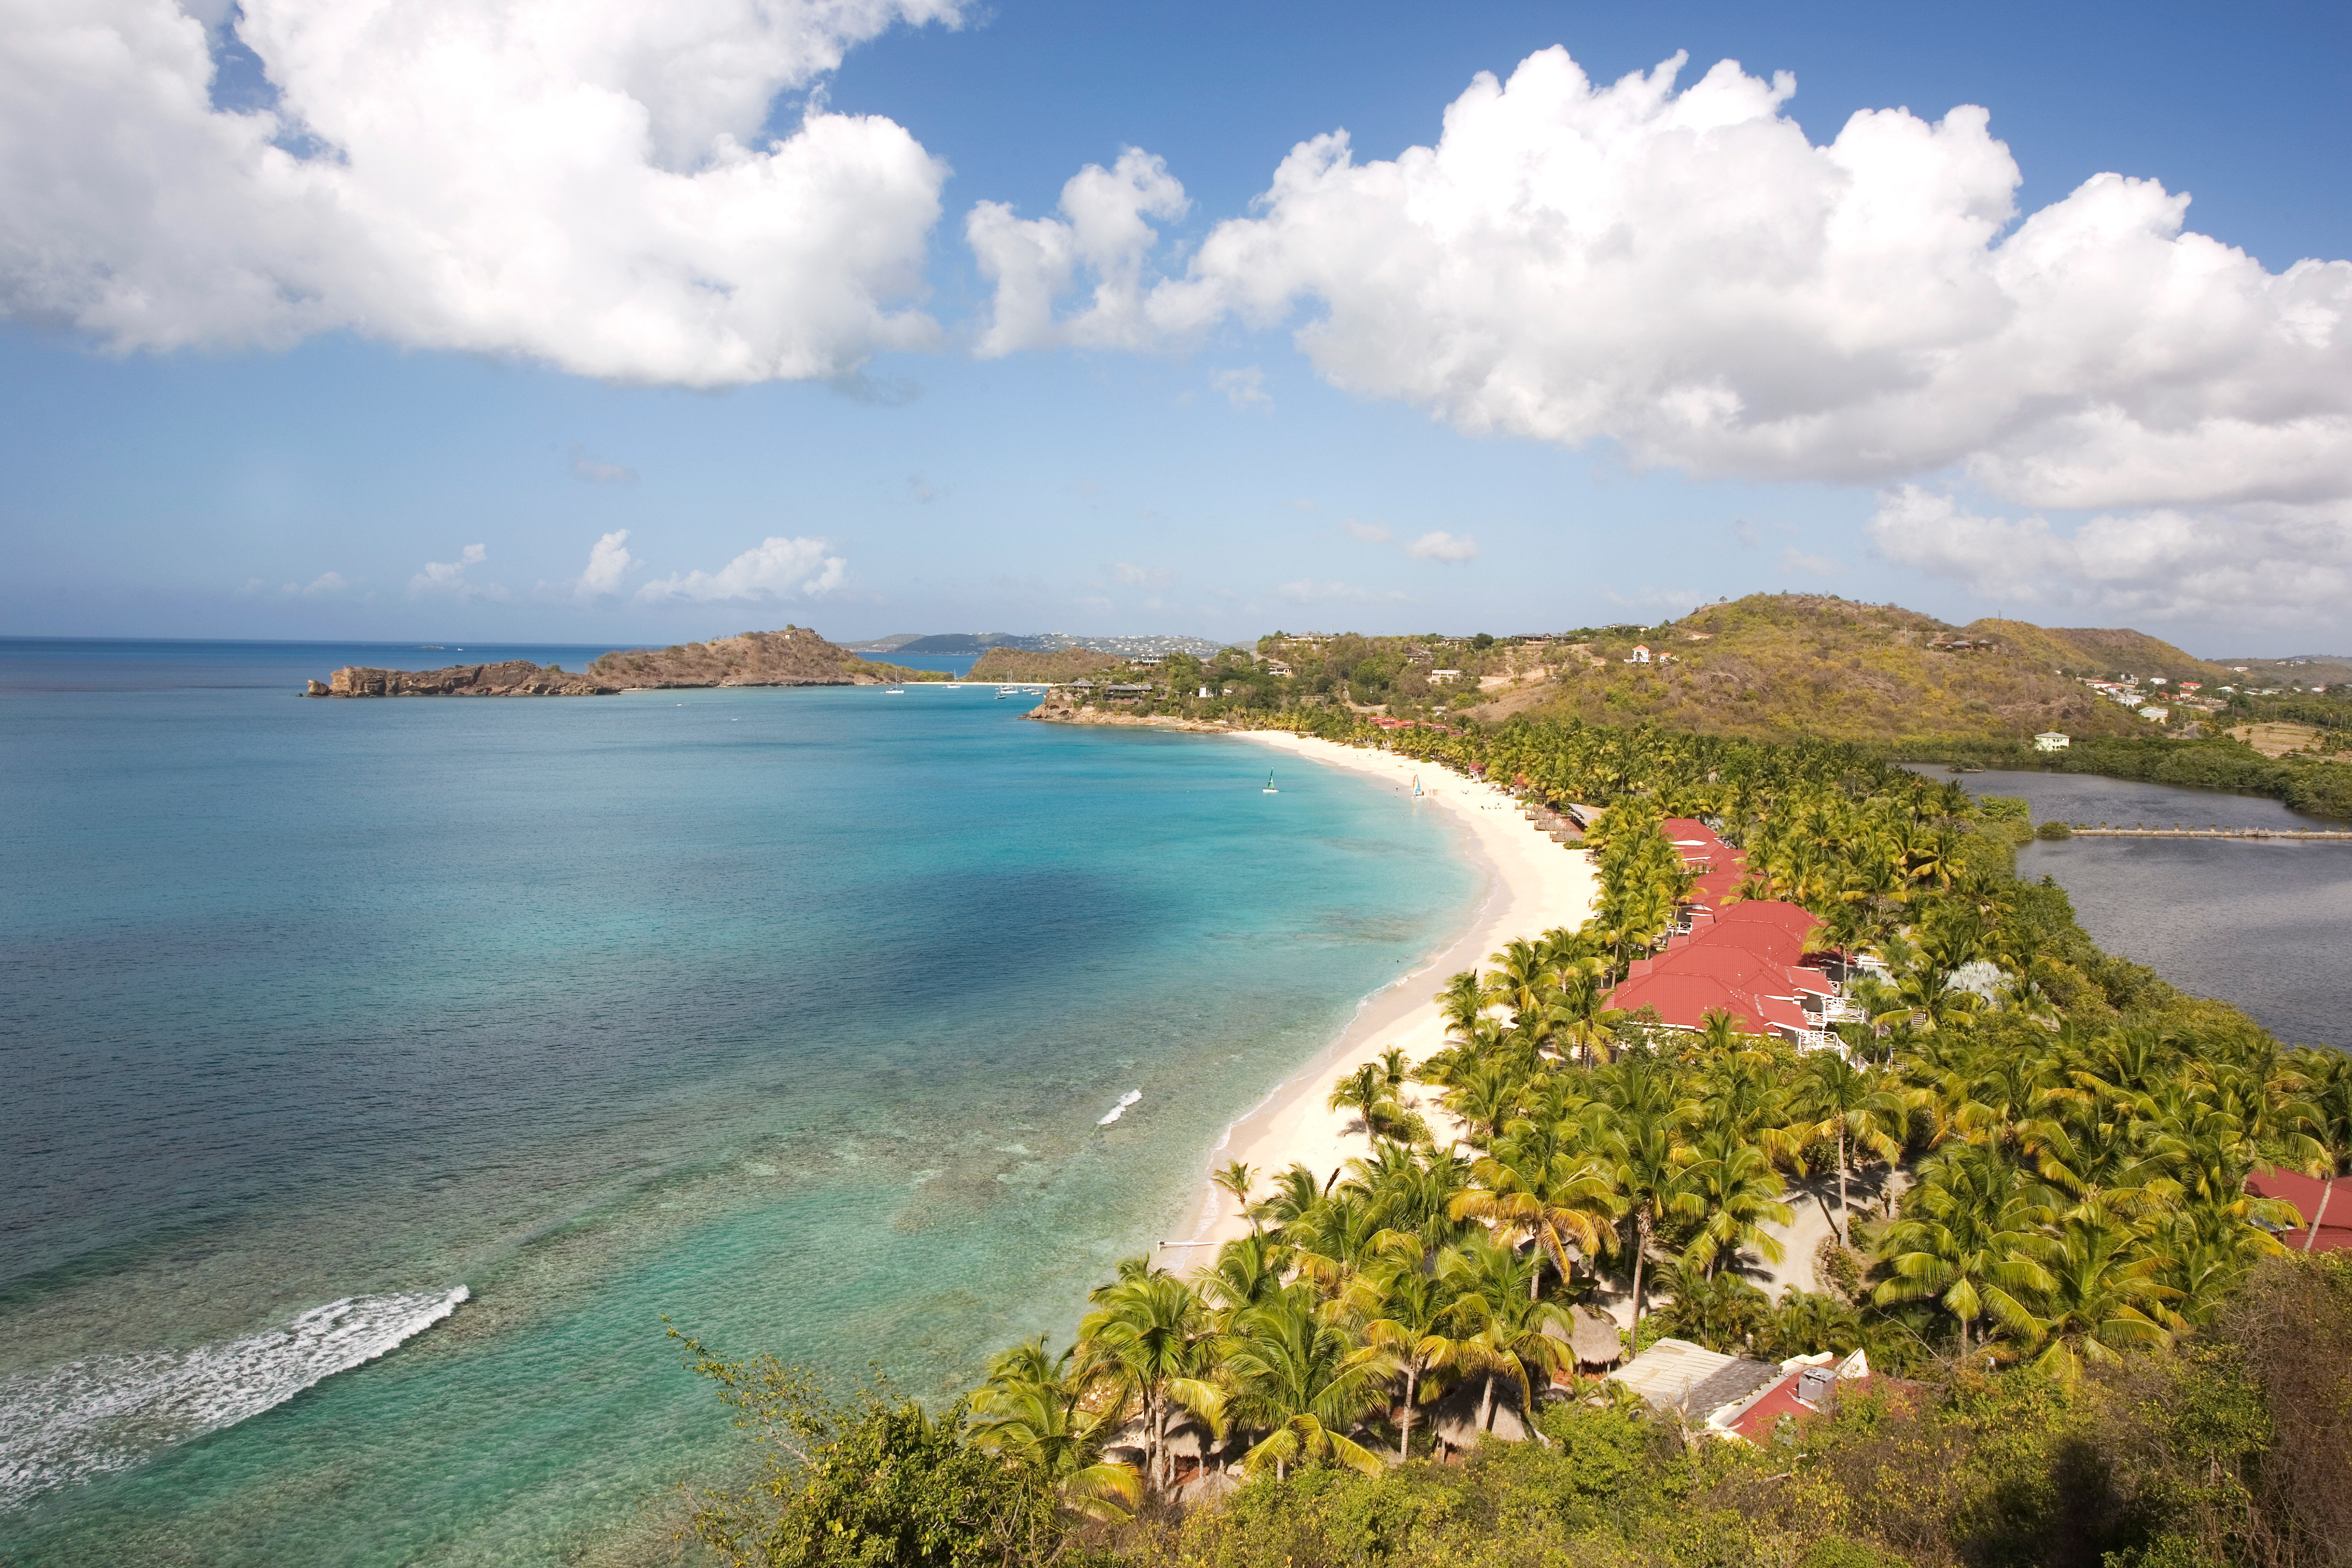 Adult-only All-inclusive Beach Beachfront Luxury Play Resort Scenic views sky water Nature Coast Sea shore Ocean horizon cloud cape cove cliff caribbean islet terrain Island reef Lake Lagoon overlooking clouds distance